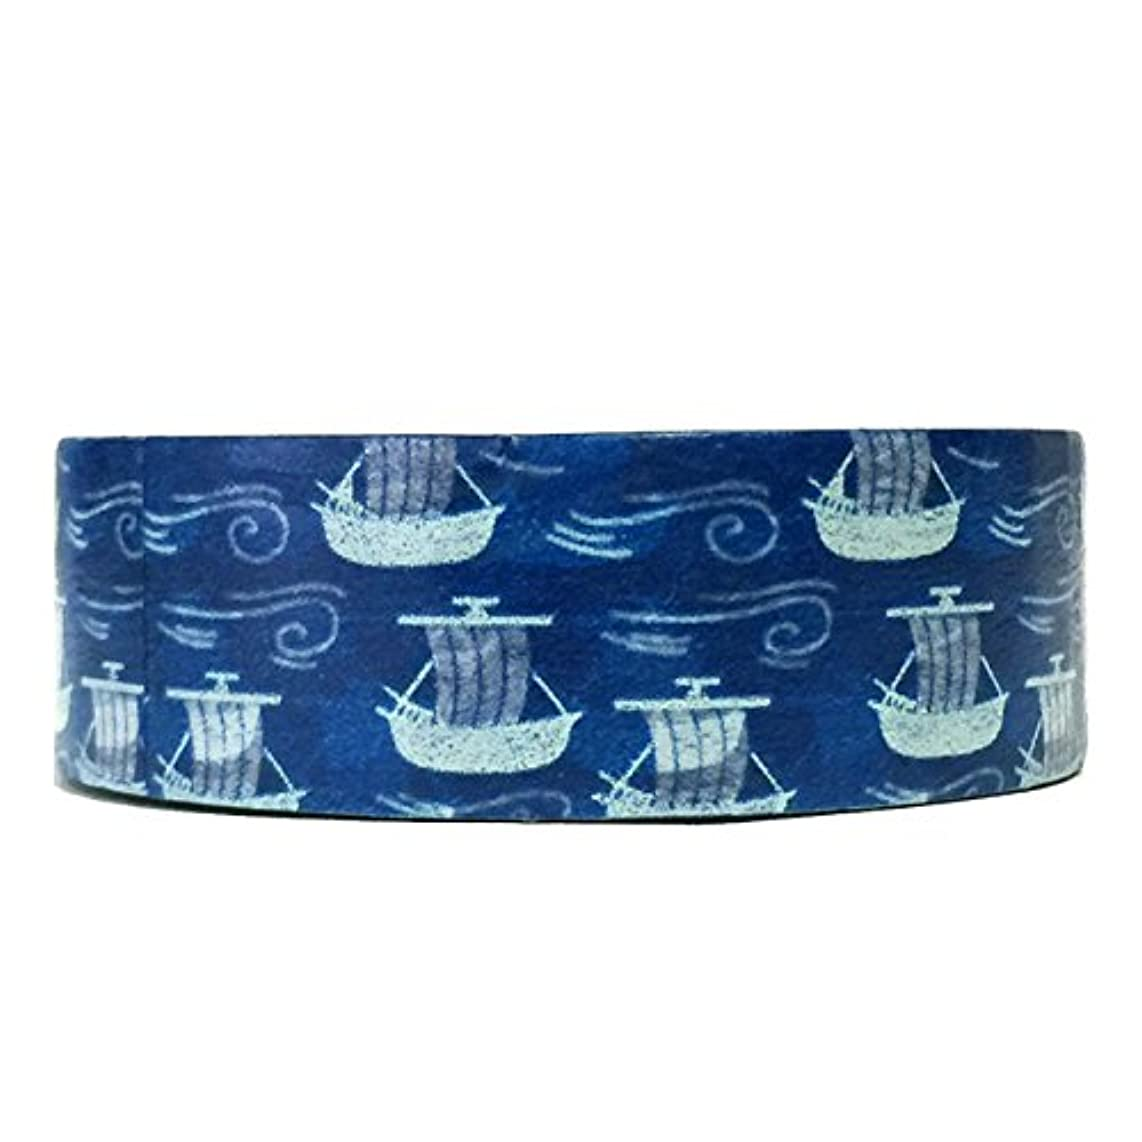 Wrapables Colorful Patterns Washi Masking Tape, Sea Voyage